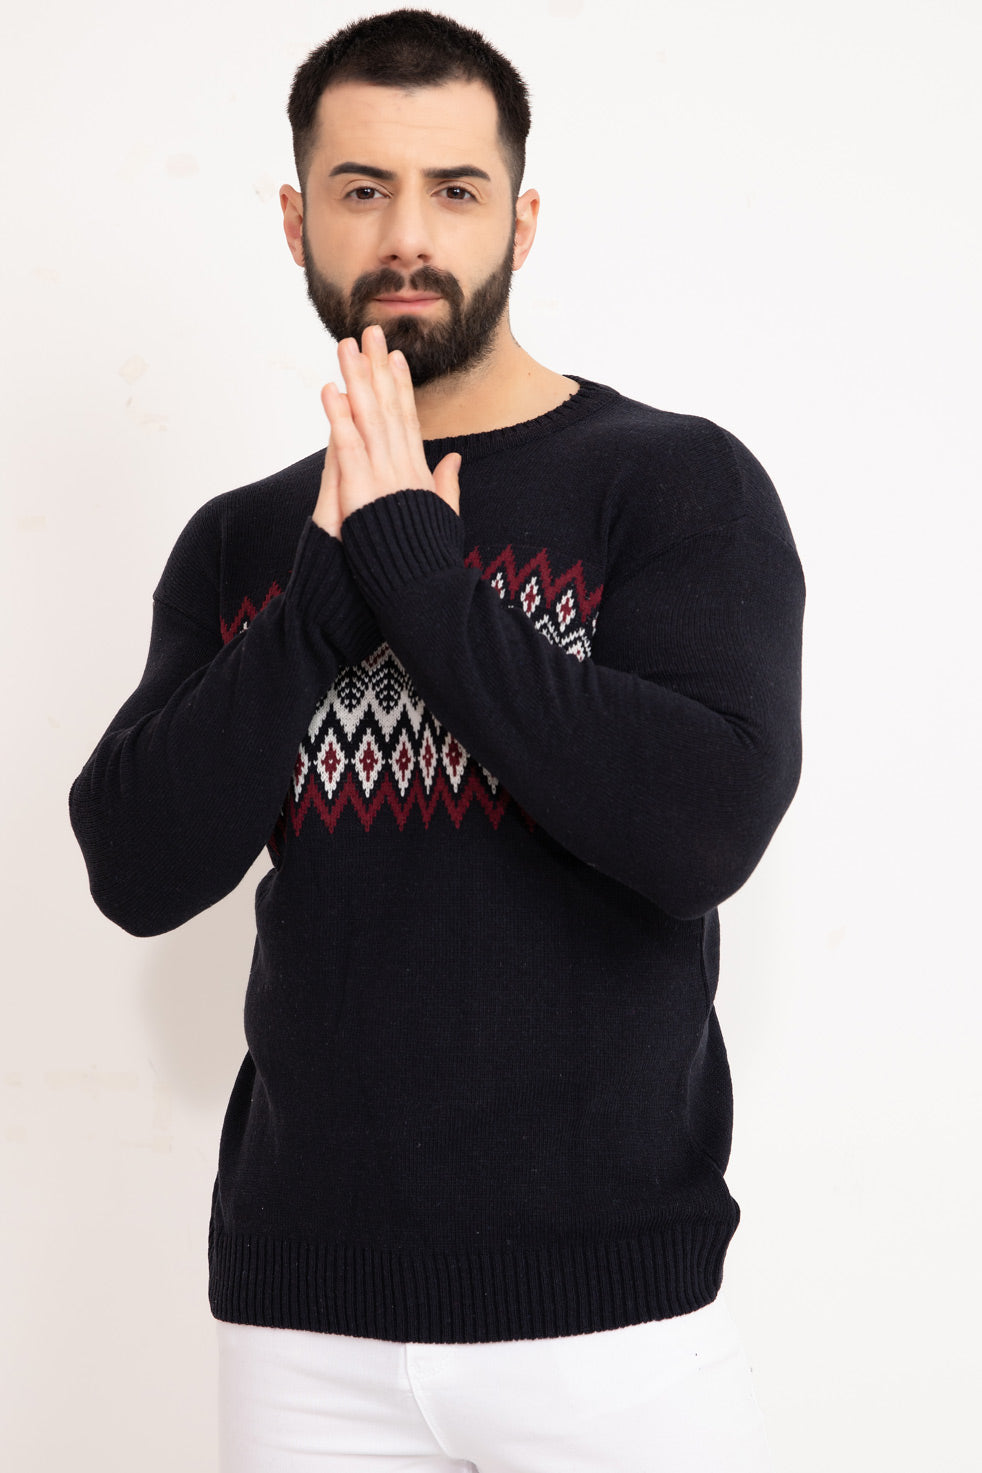 Navy-blue Patterned Men's Knitwear Sweater